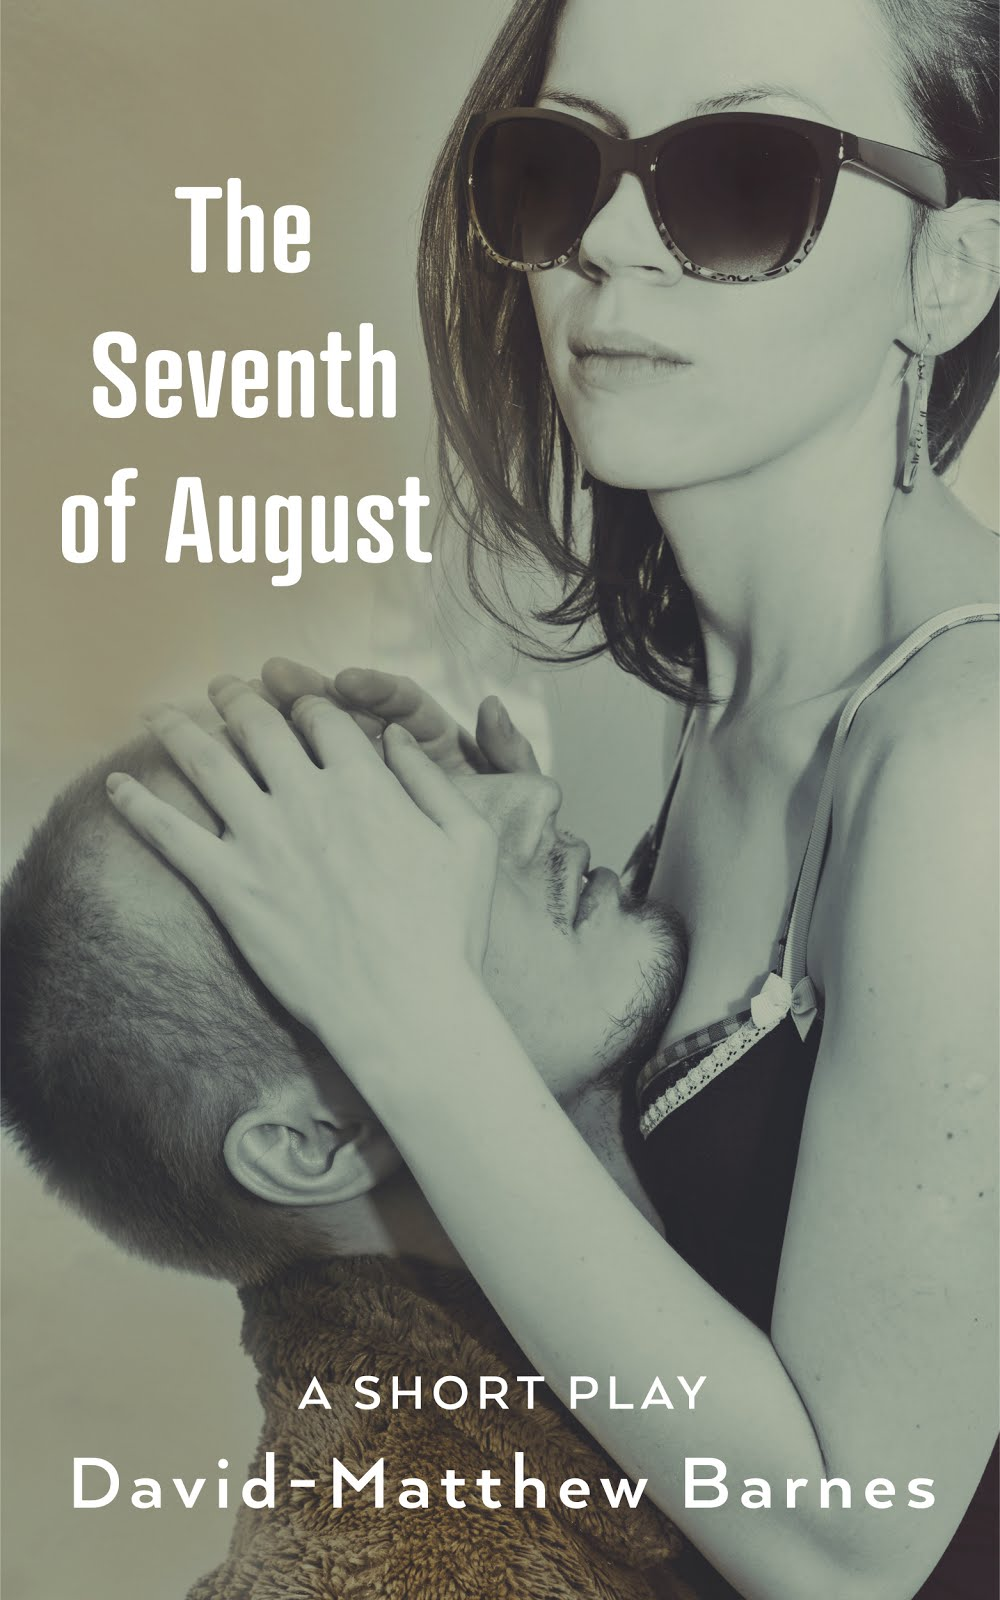 THE SEVENTH OF AUGUST